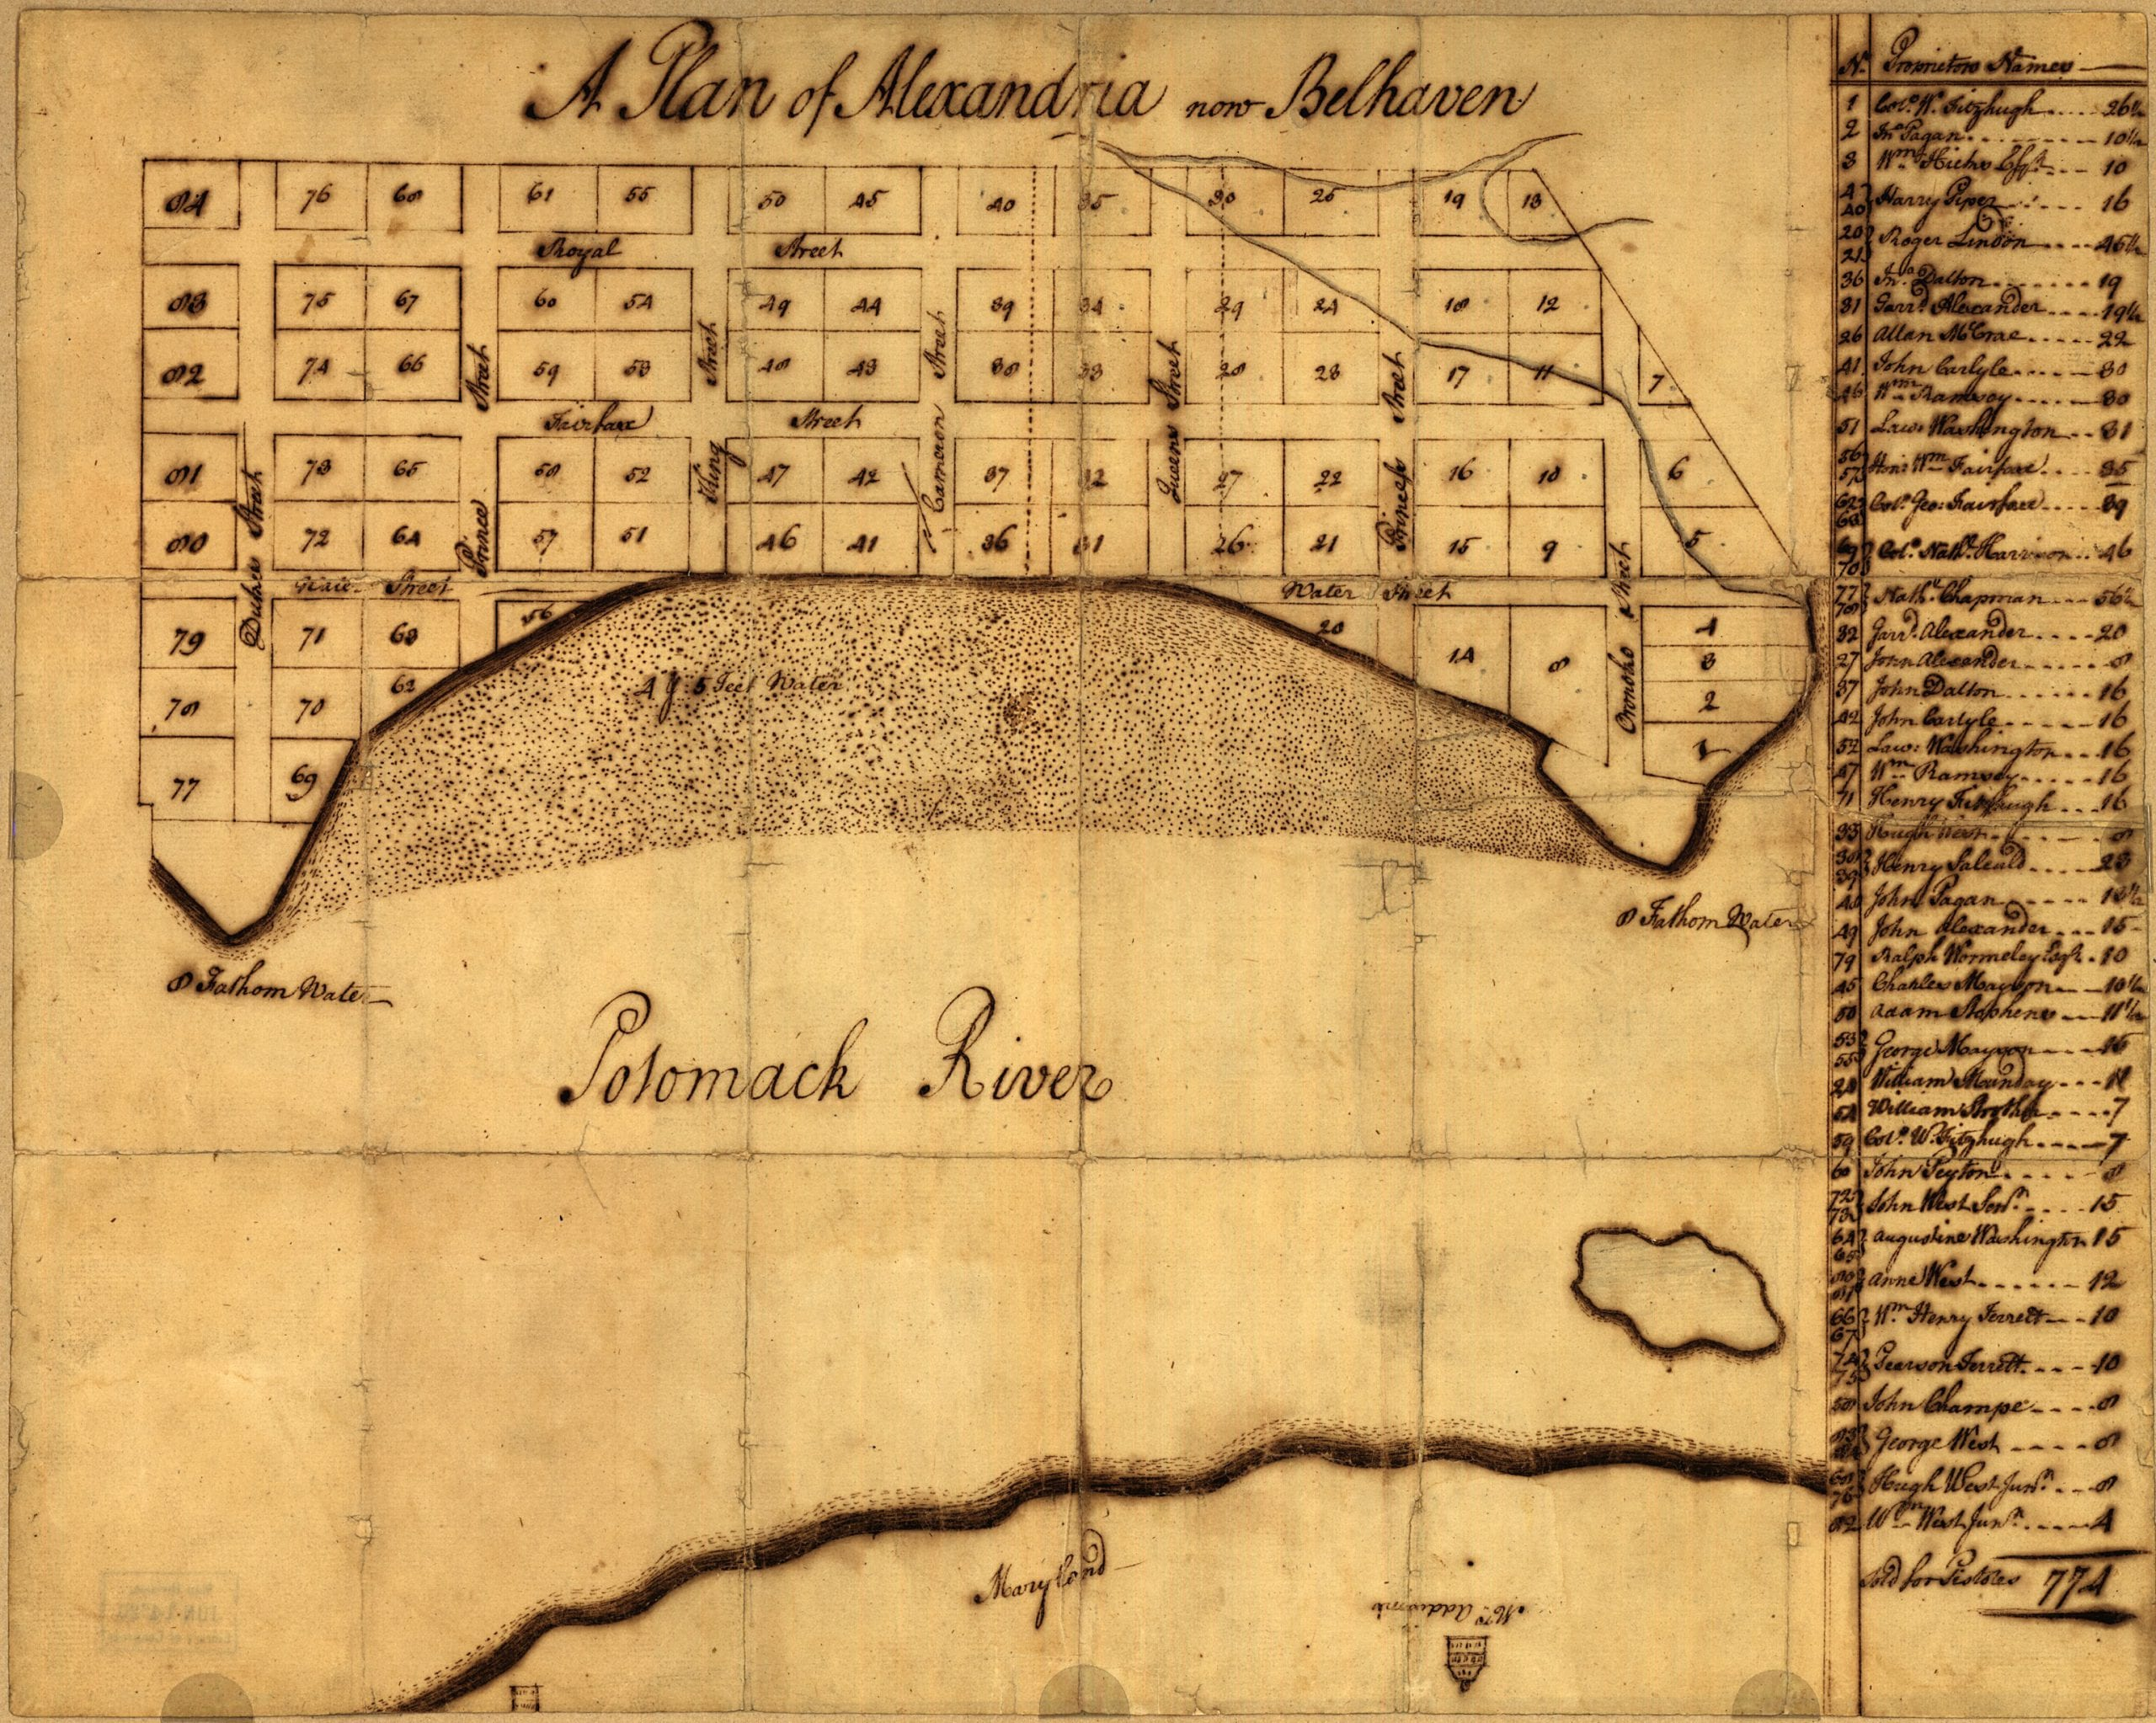 George Washington's Map of Alexandria in 1749